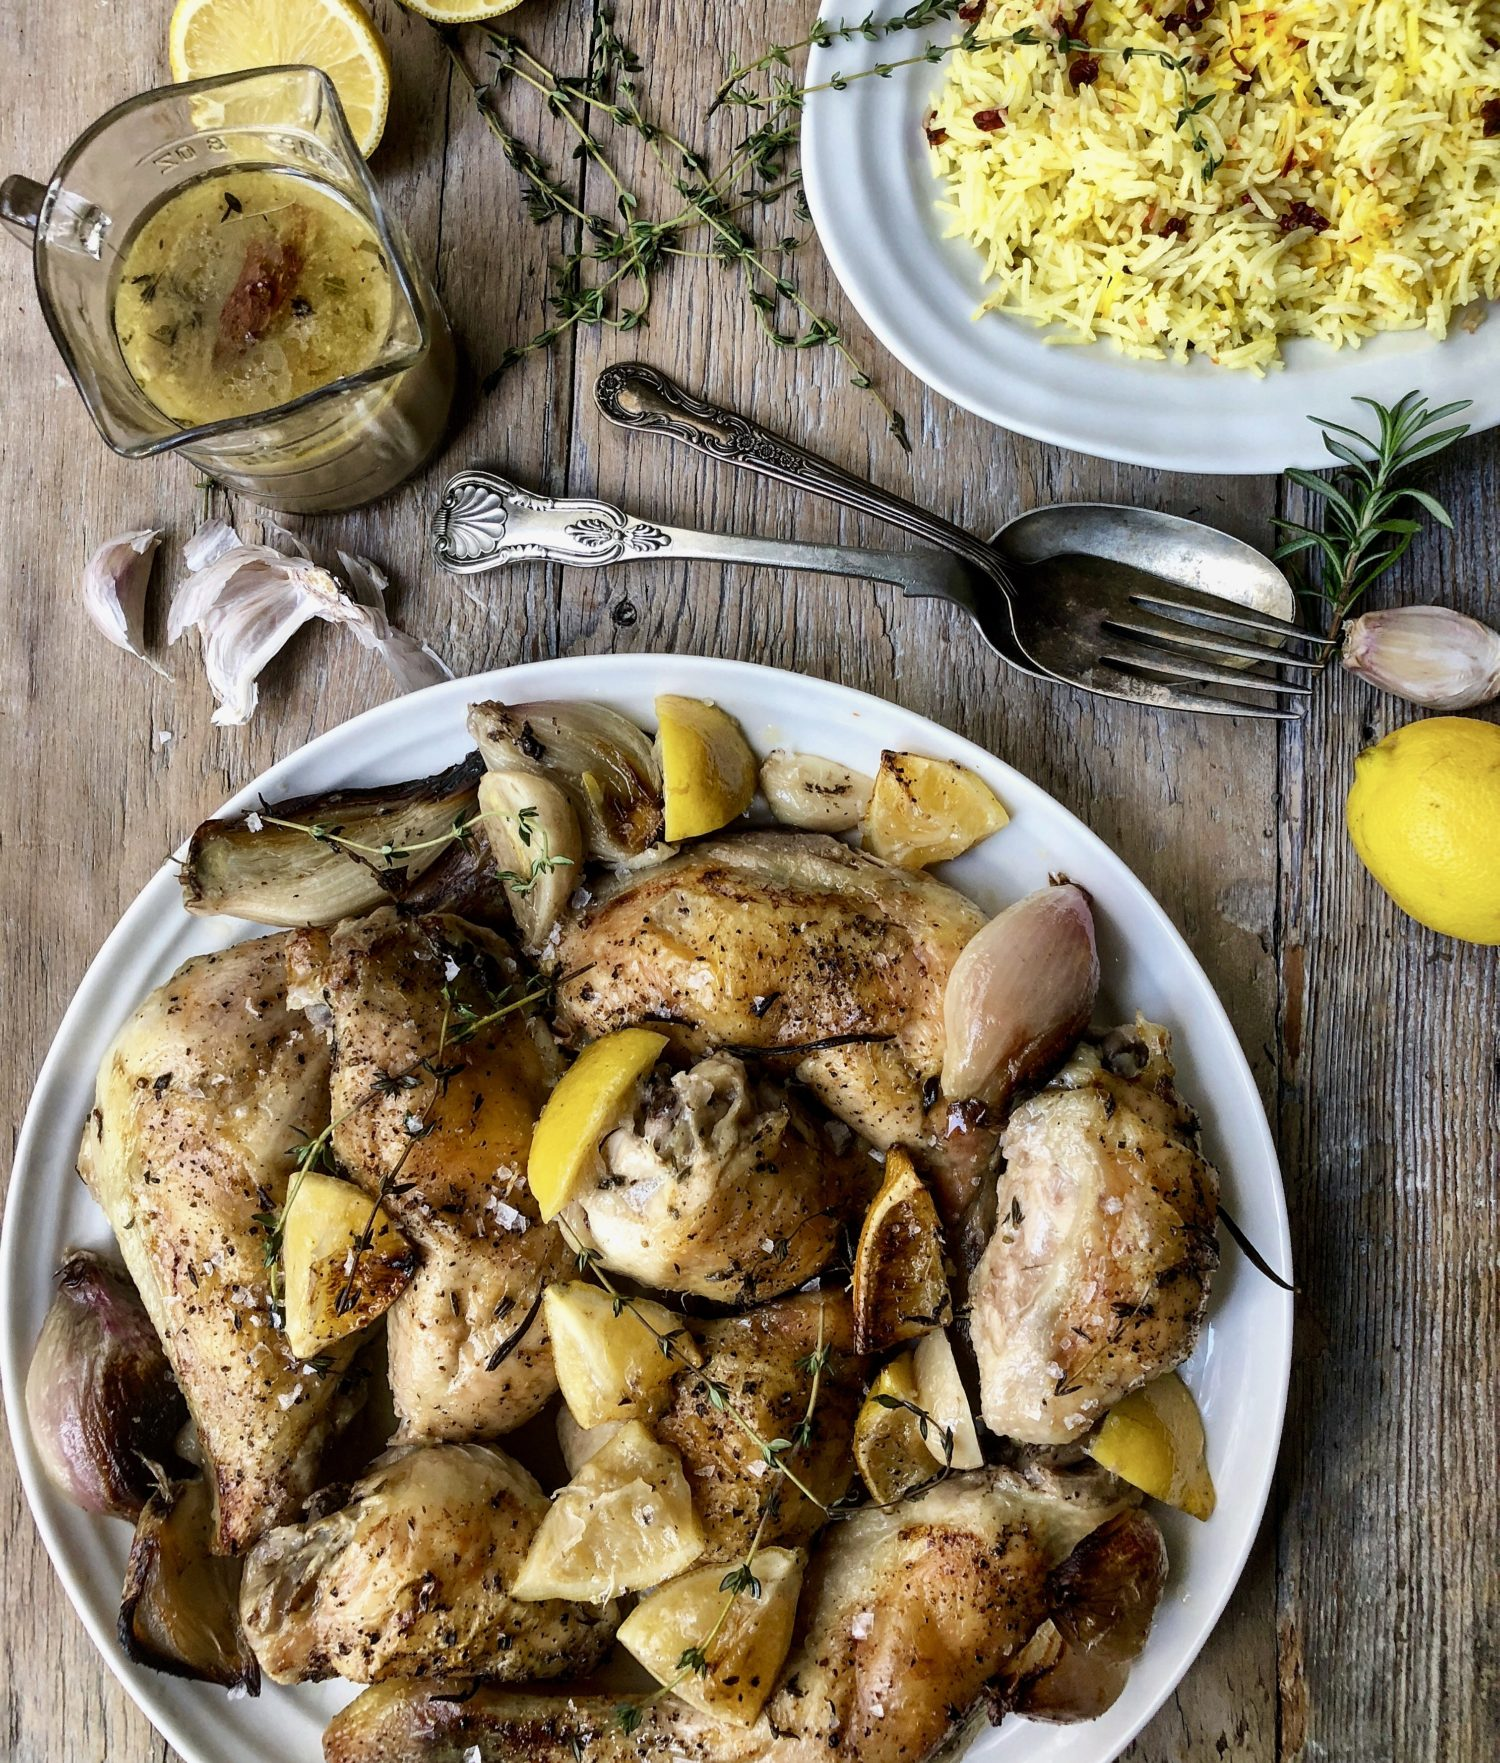 The most aromatic Mediterranean Chicken with 20 cloves of garlic